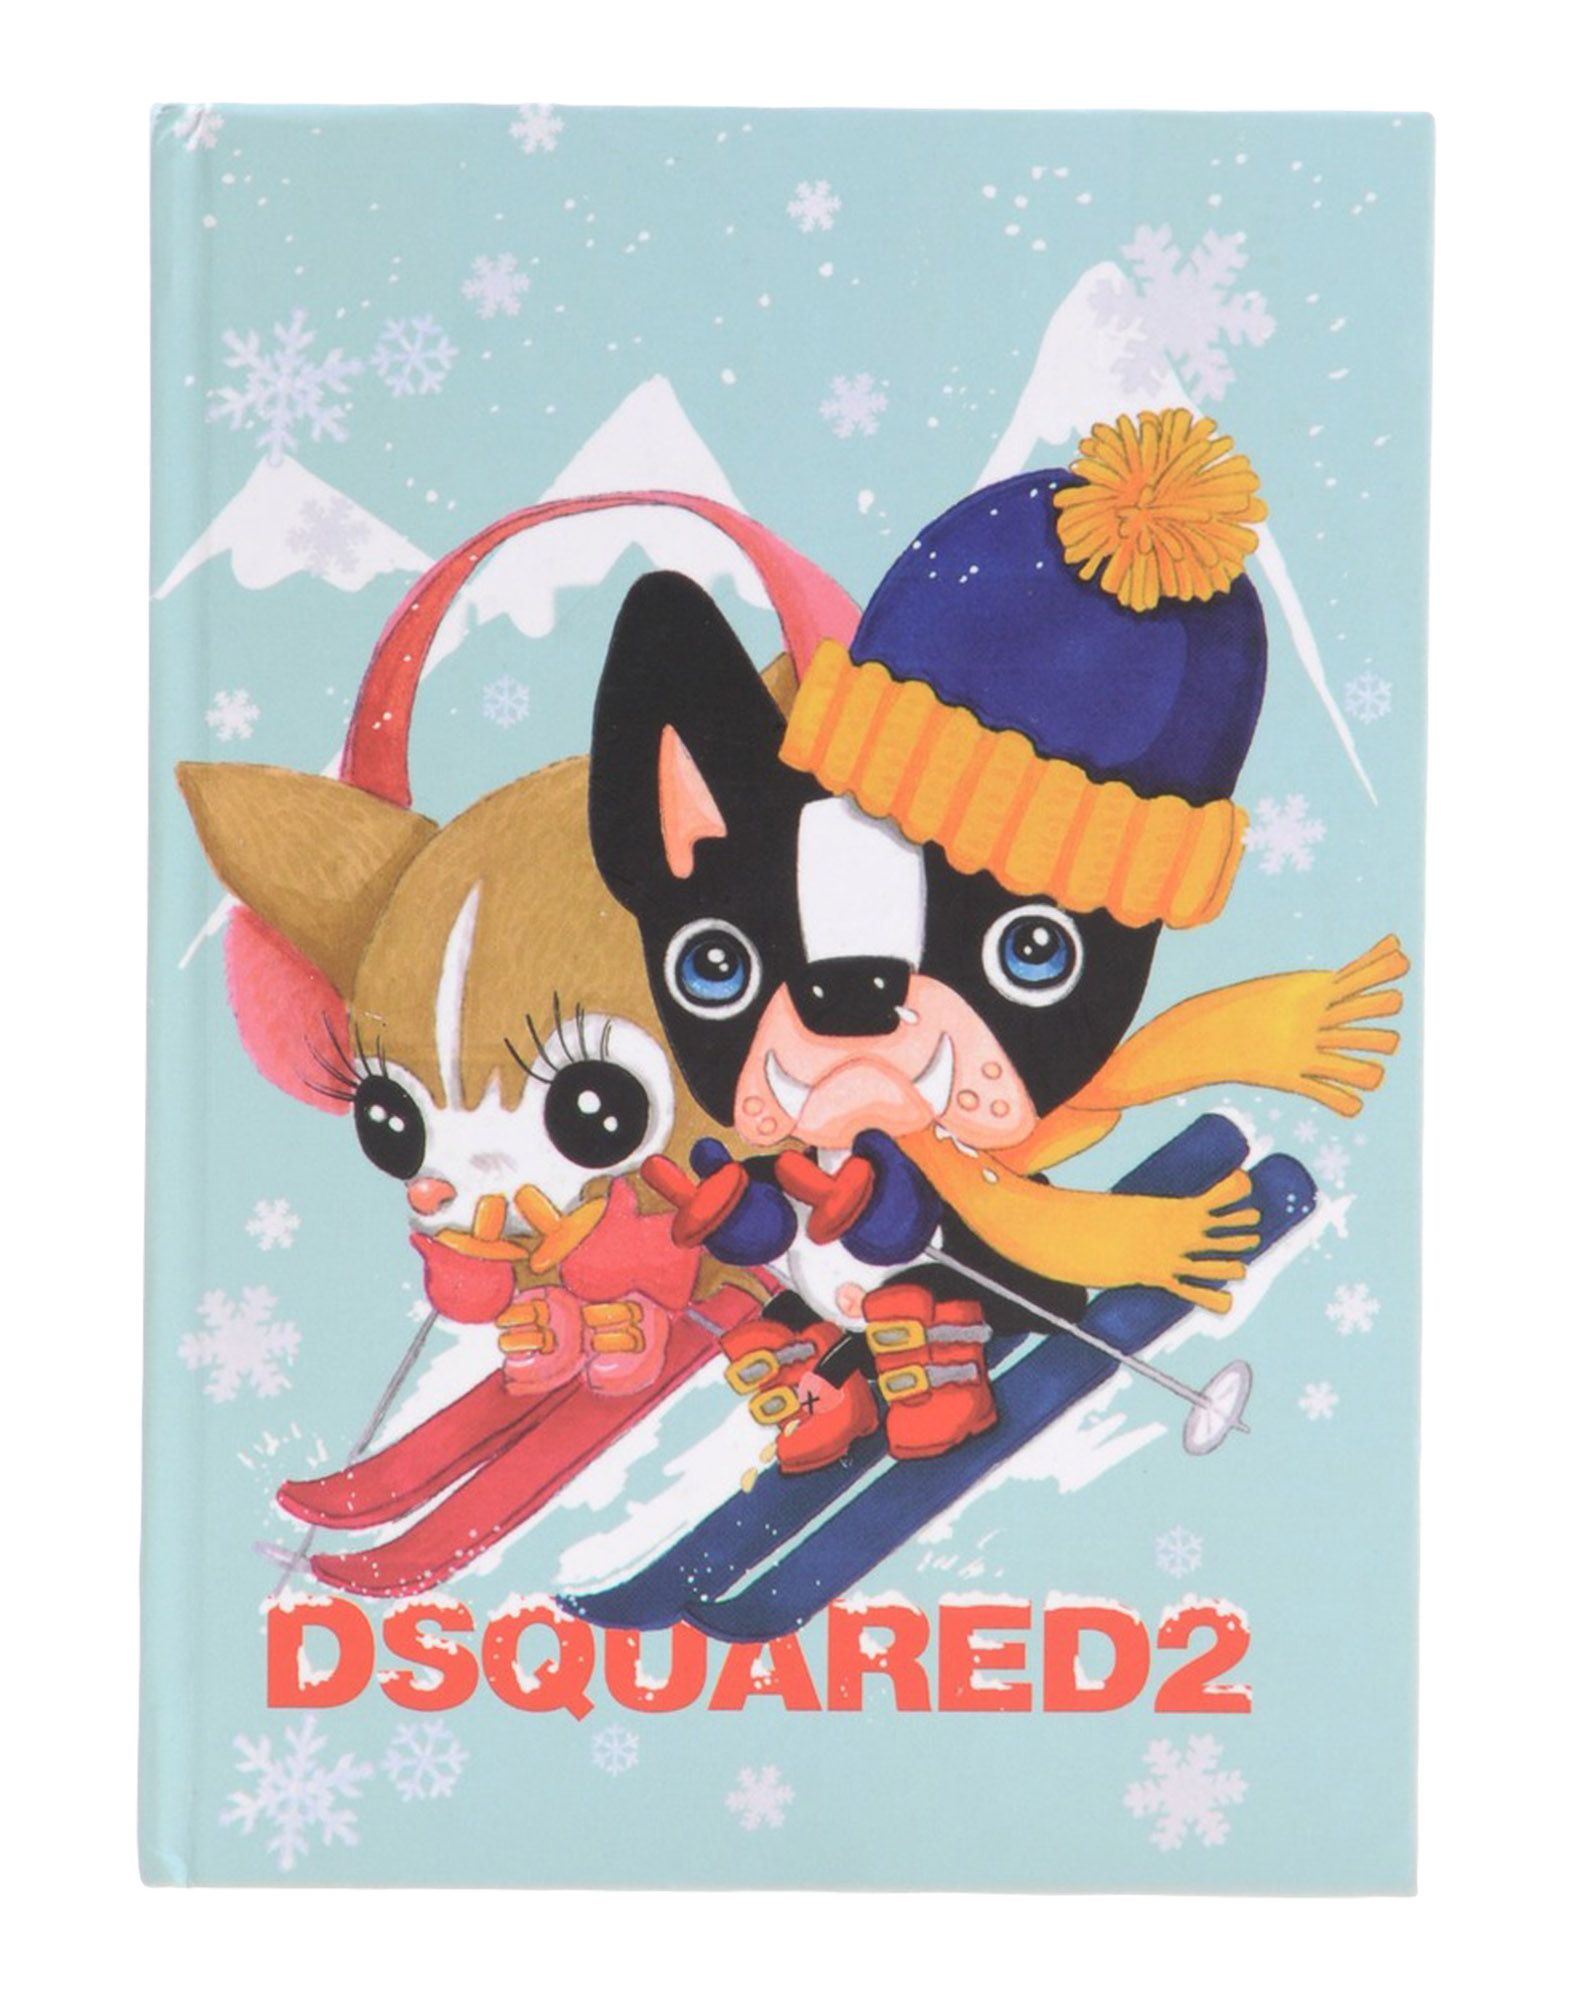 DSQUARED2 Planners